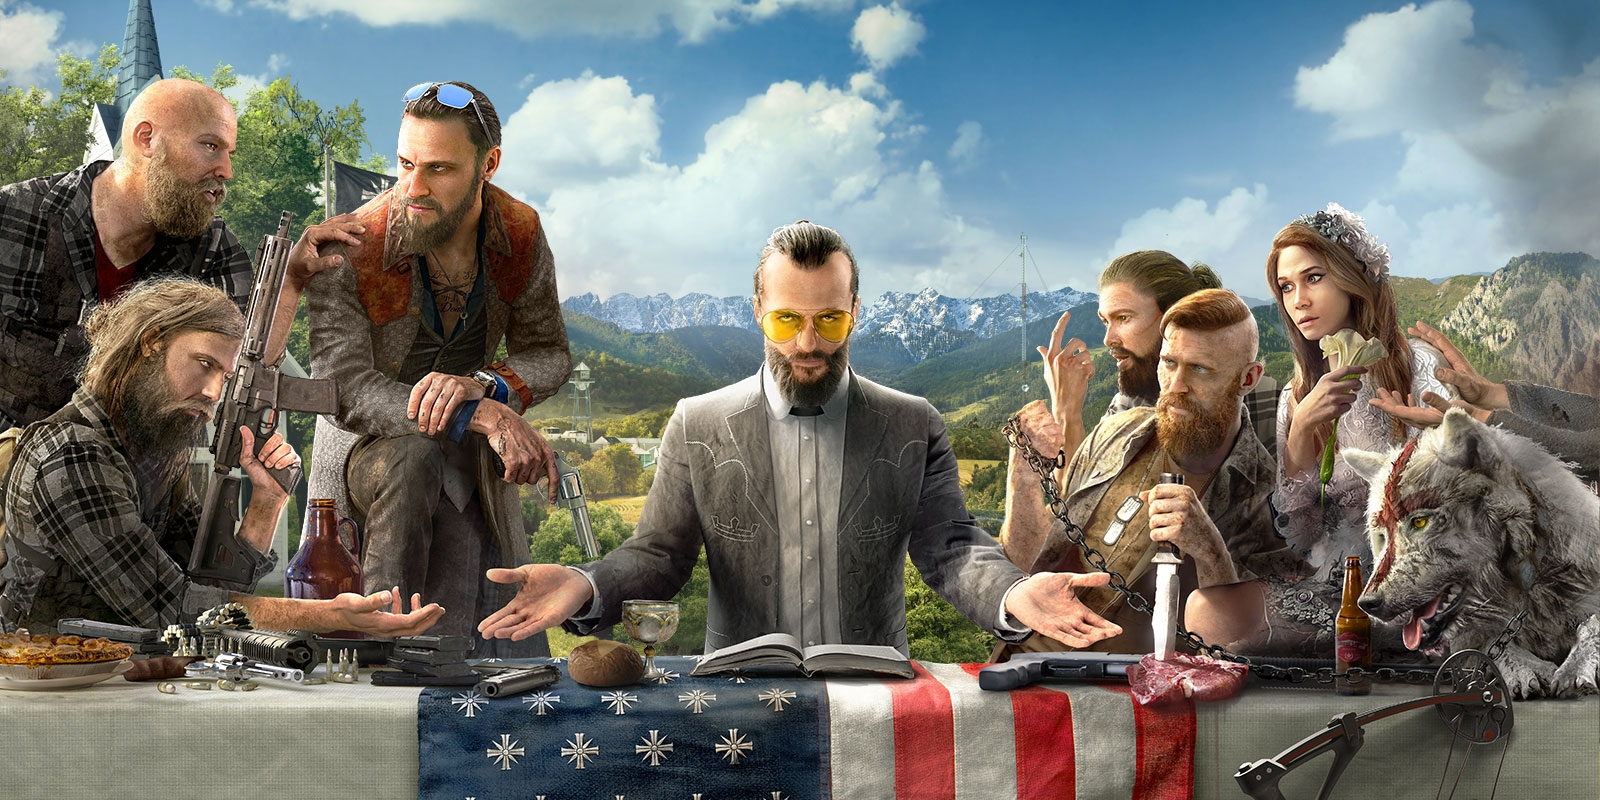 Farcry New Dawn Hd Wallpaper Download For Windows 10: Ubisoft Delays Far Cry 5 And The Crew 2